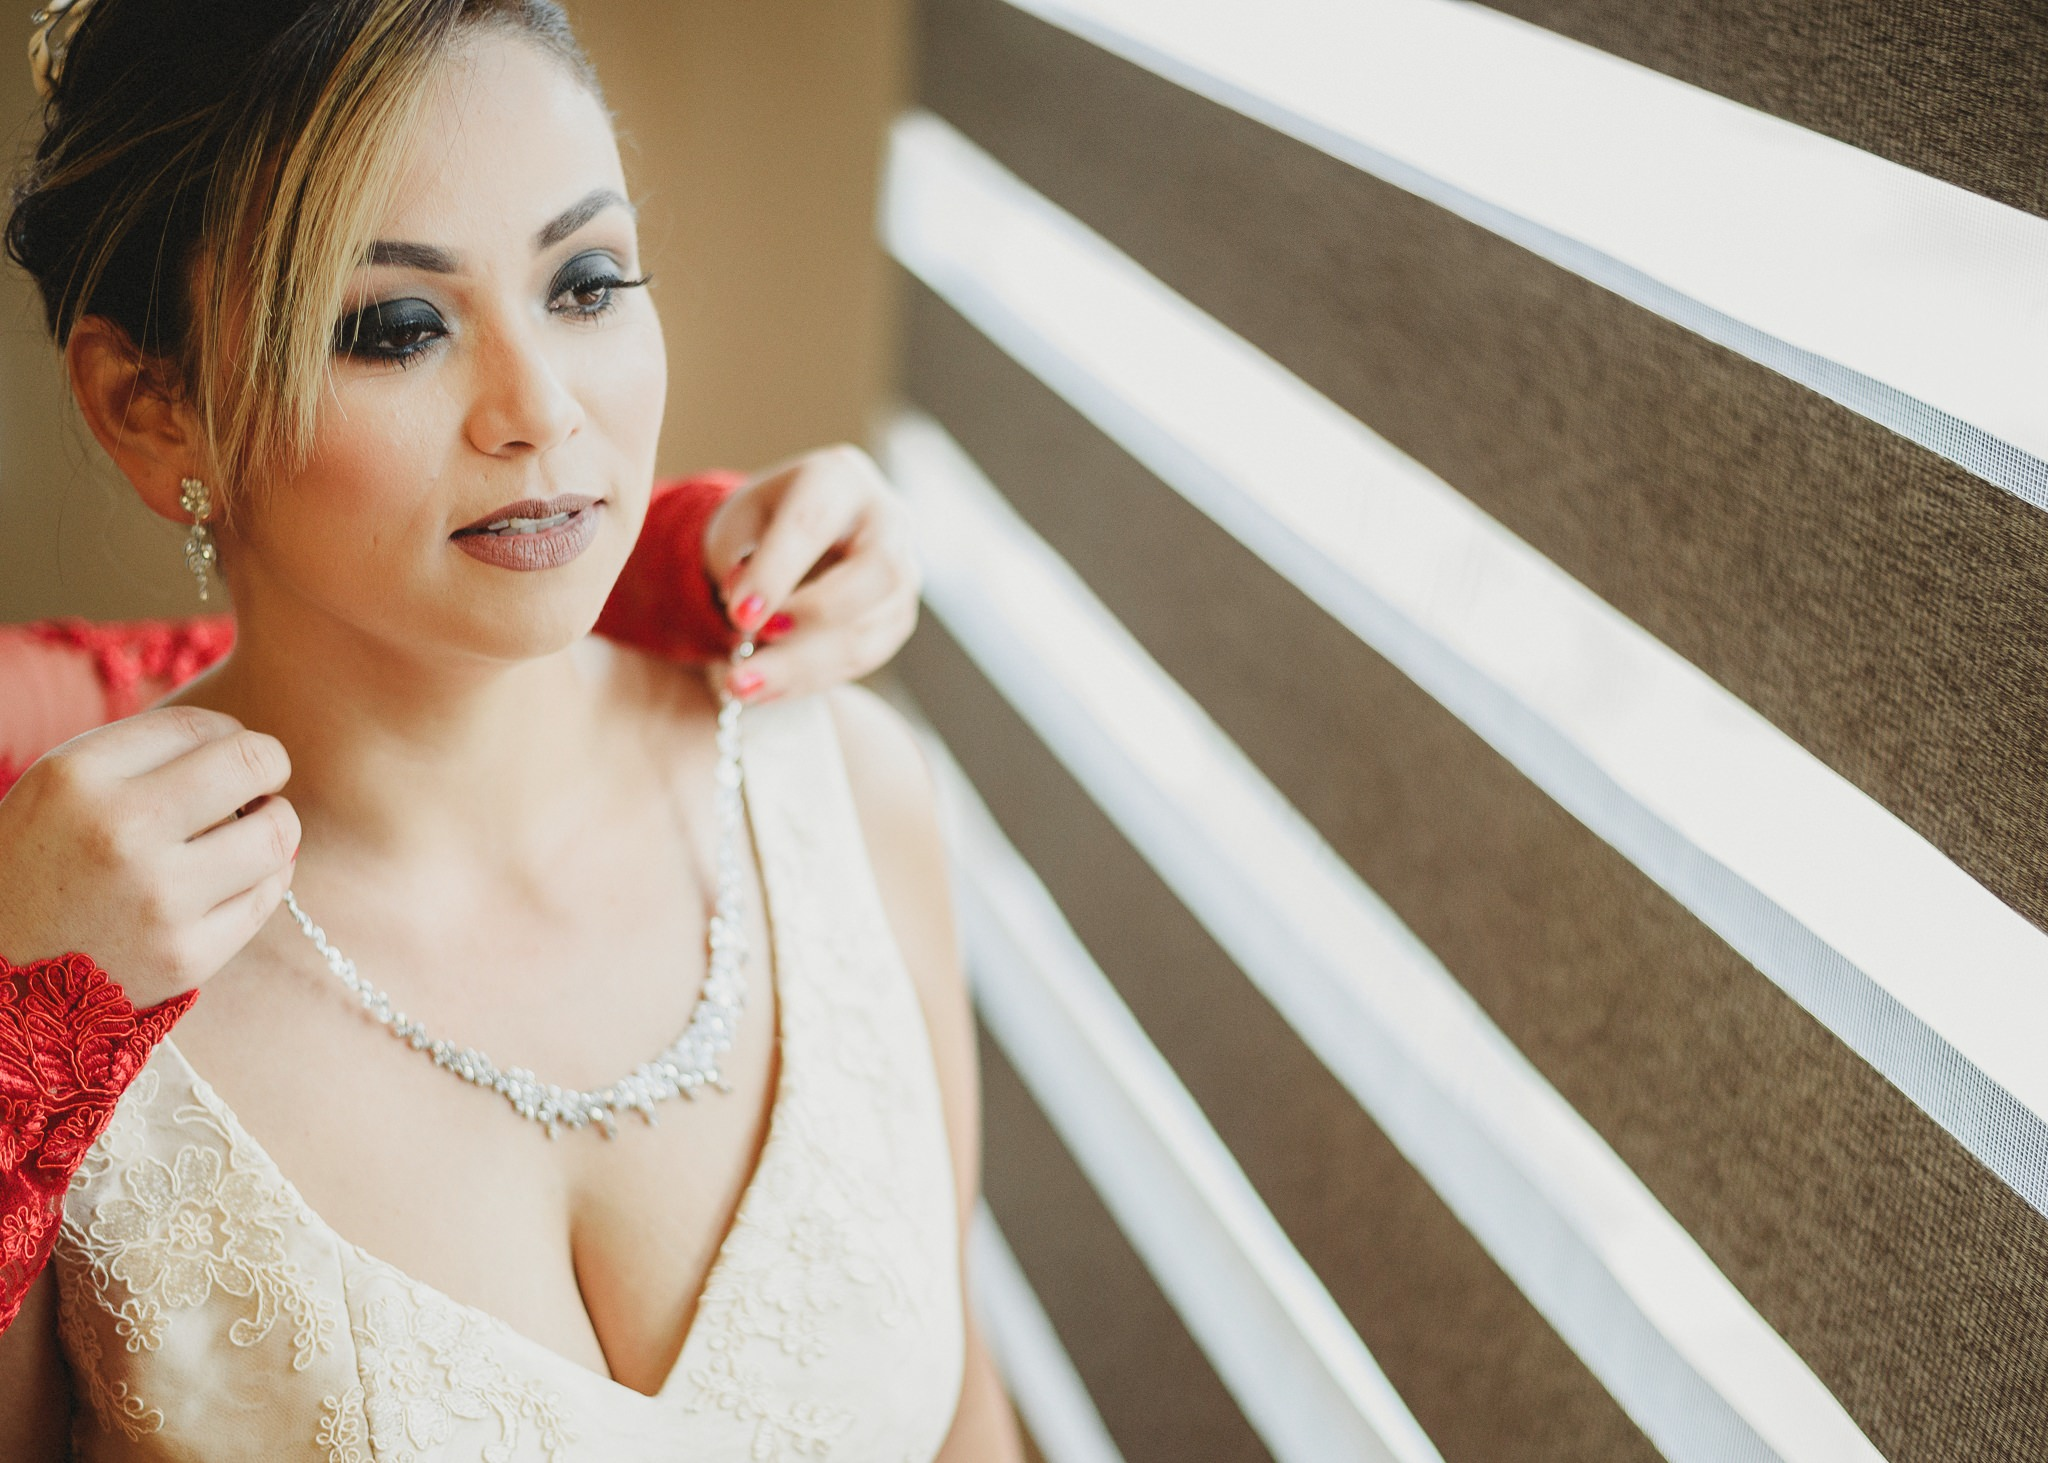 01getting-ready-wedding-hotel-las-trojes-boda-preparativos-fotografo-luis-houdin44